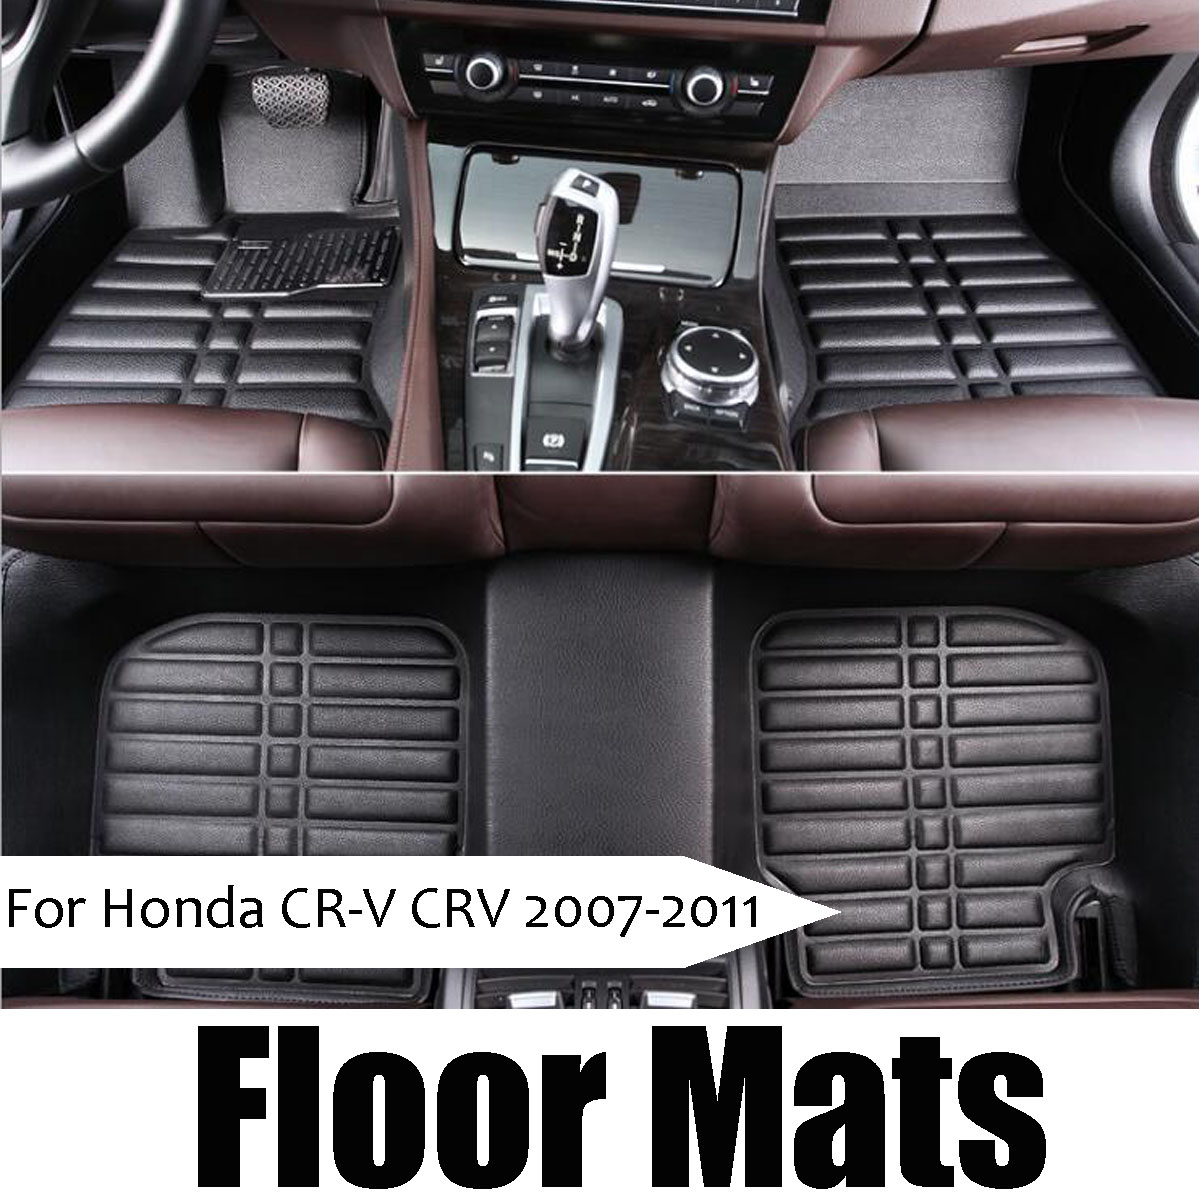 3pcs Black Leather Waterproof Car Floor Mats Liner Fly5D For Honda CRV 2011 2012 2013 2014 2015 2016 2017 Auto Accessories3pcs Black Leather Waterproof Car Floor Mats Liner Fly5D For Honda CRV 2011 2012 2013 2014 2015 2016 2017 Auto Accessories